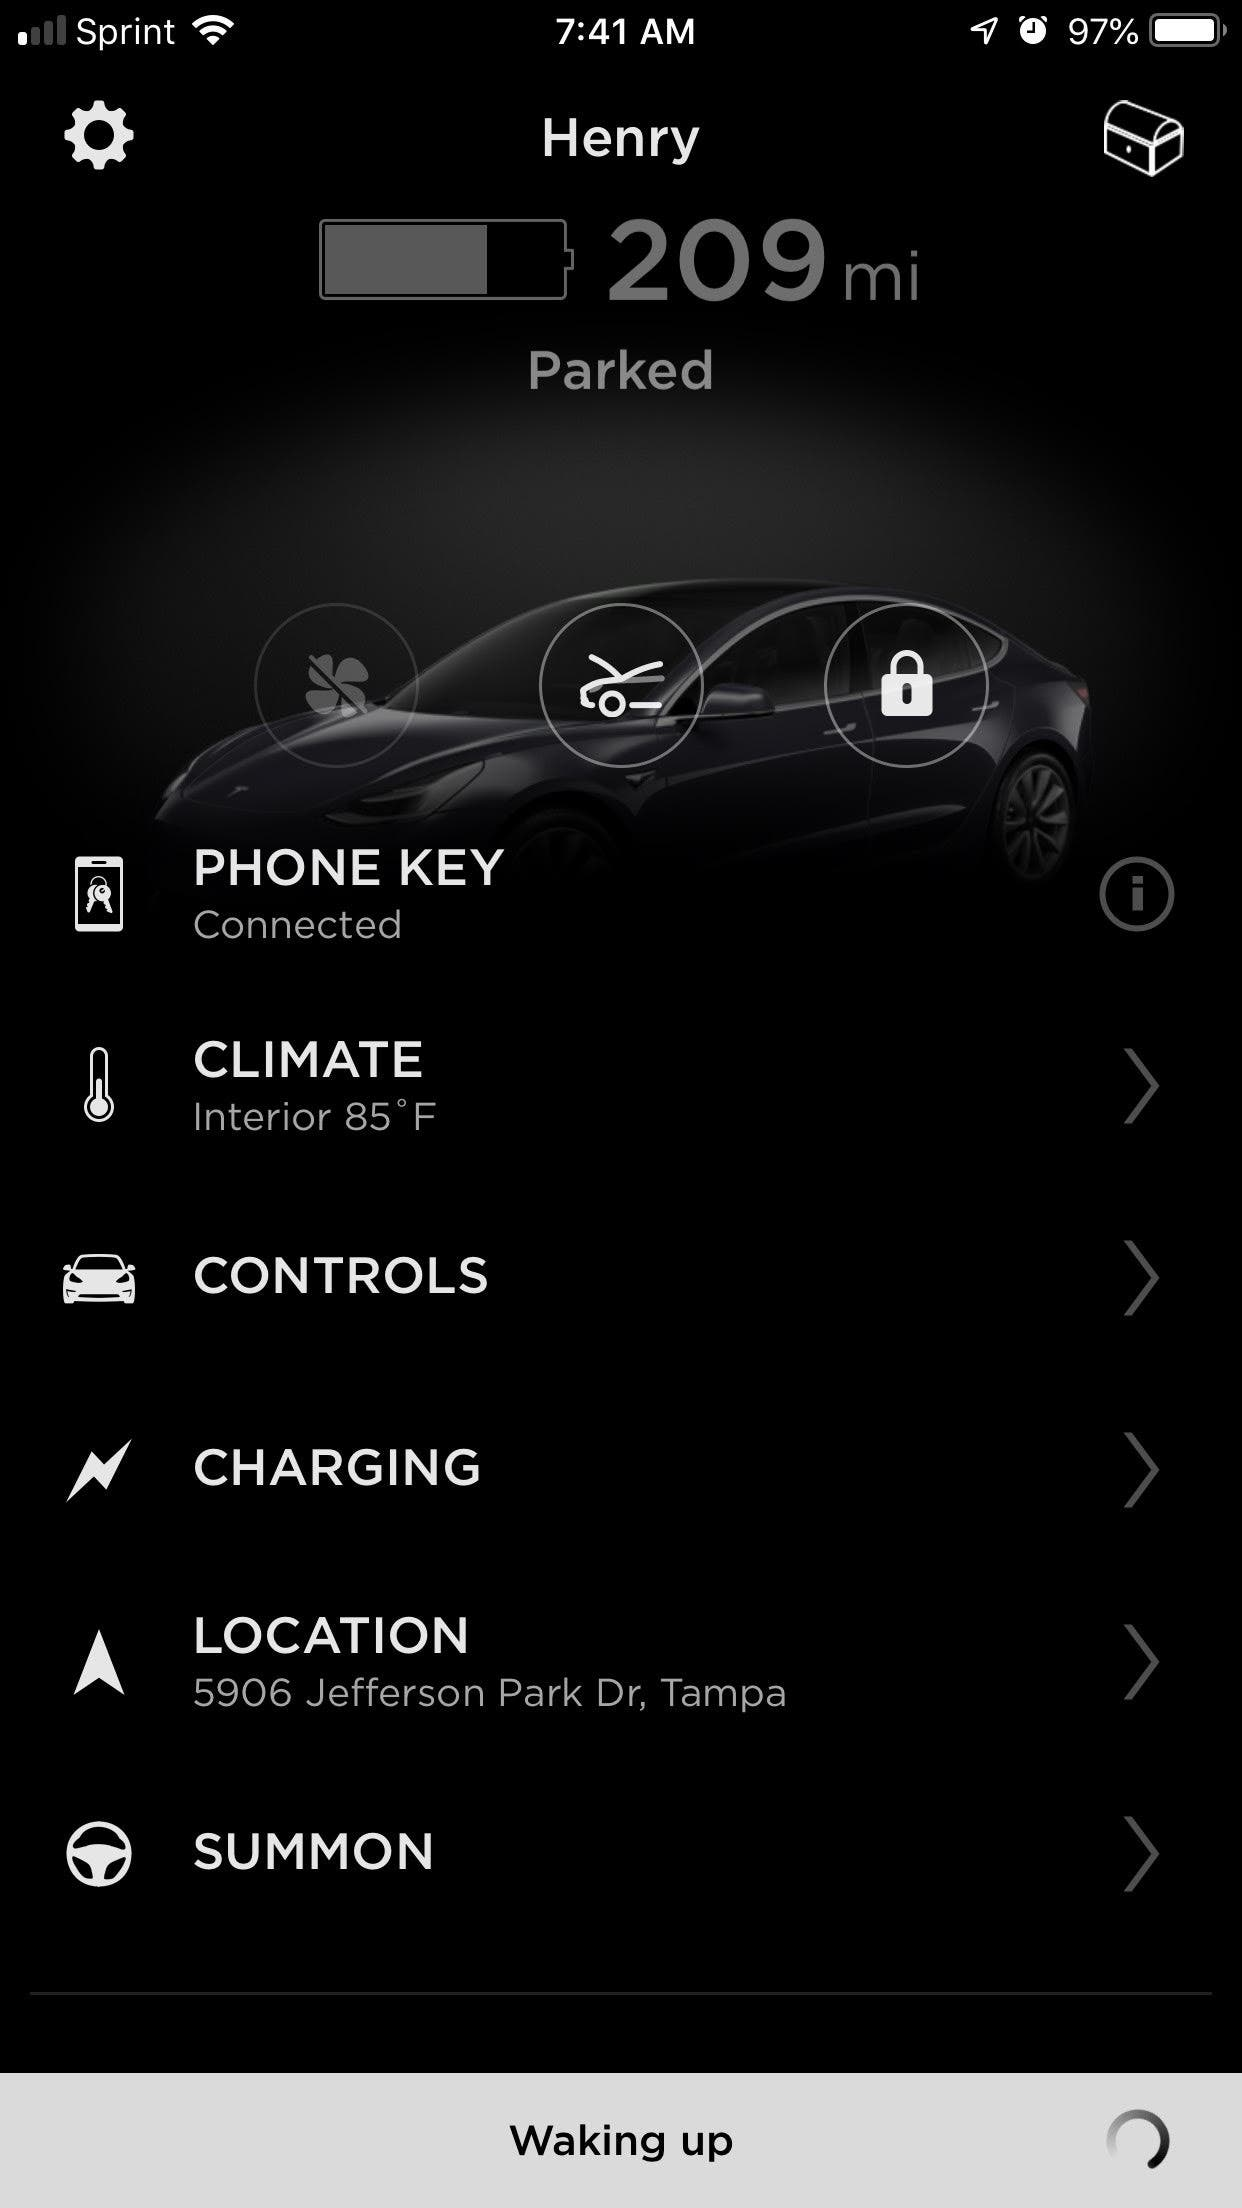 Tesla Owners, Here's How To Send A Photo To Space! | CleanTechnica